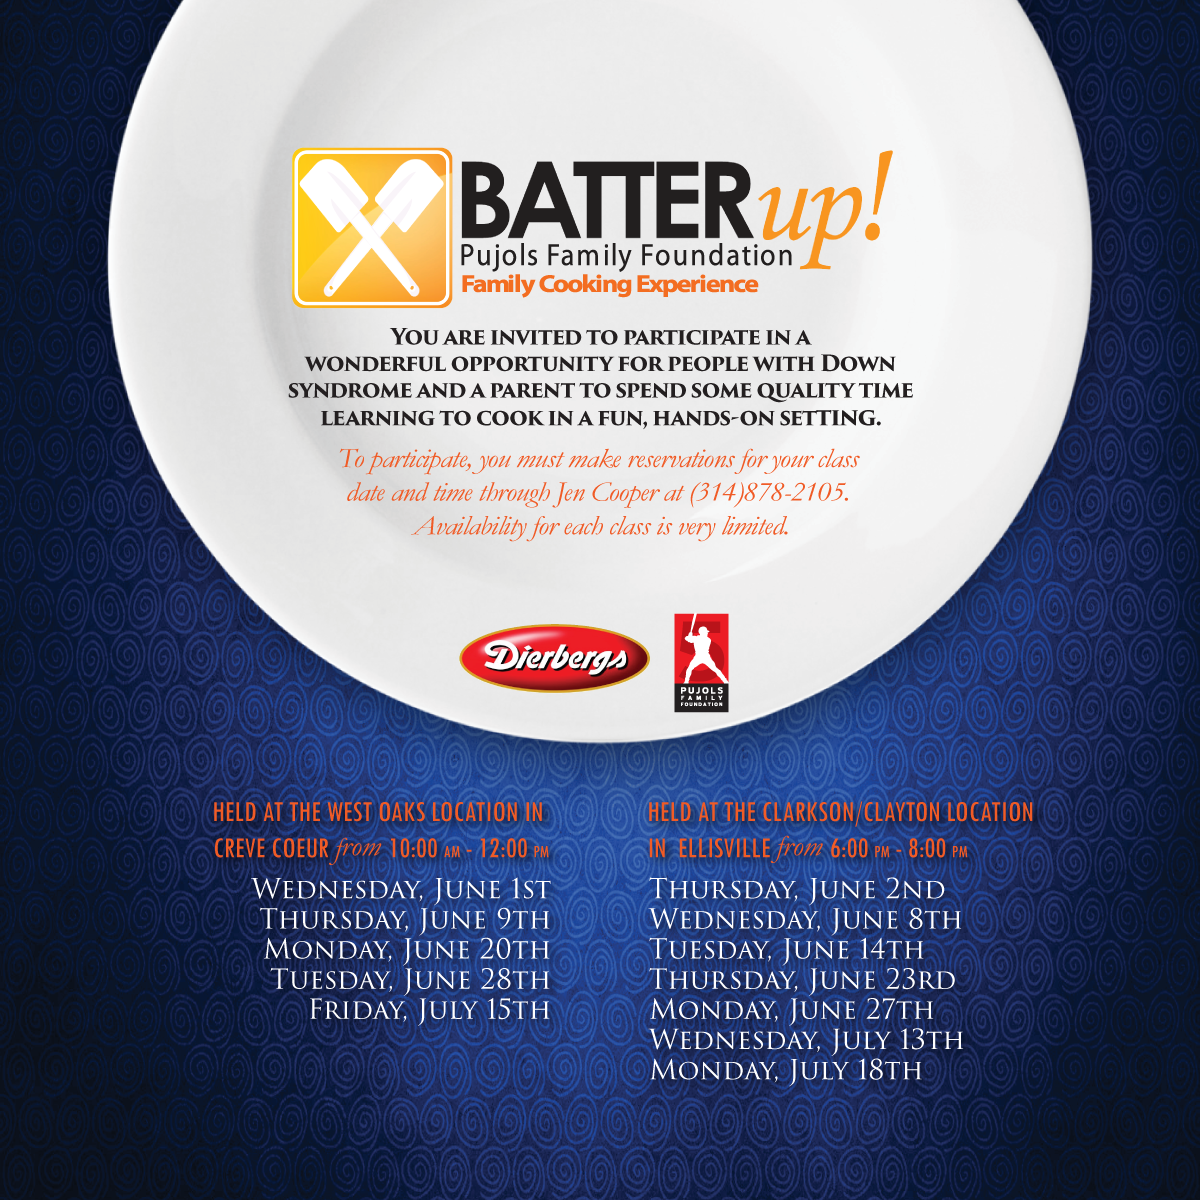 2016 Batter Up Cooking Class Invitation